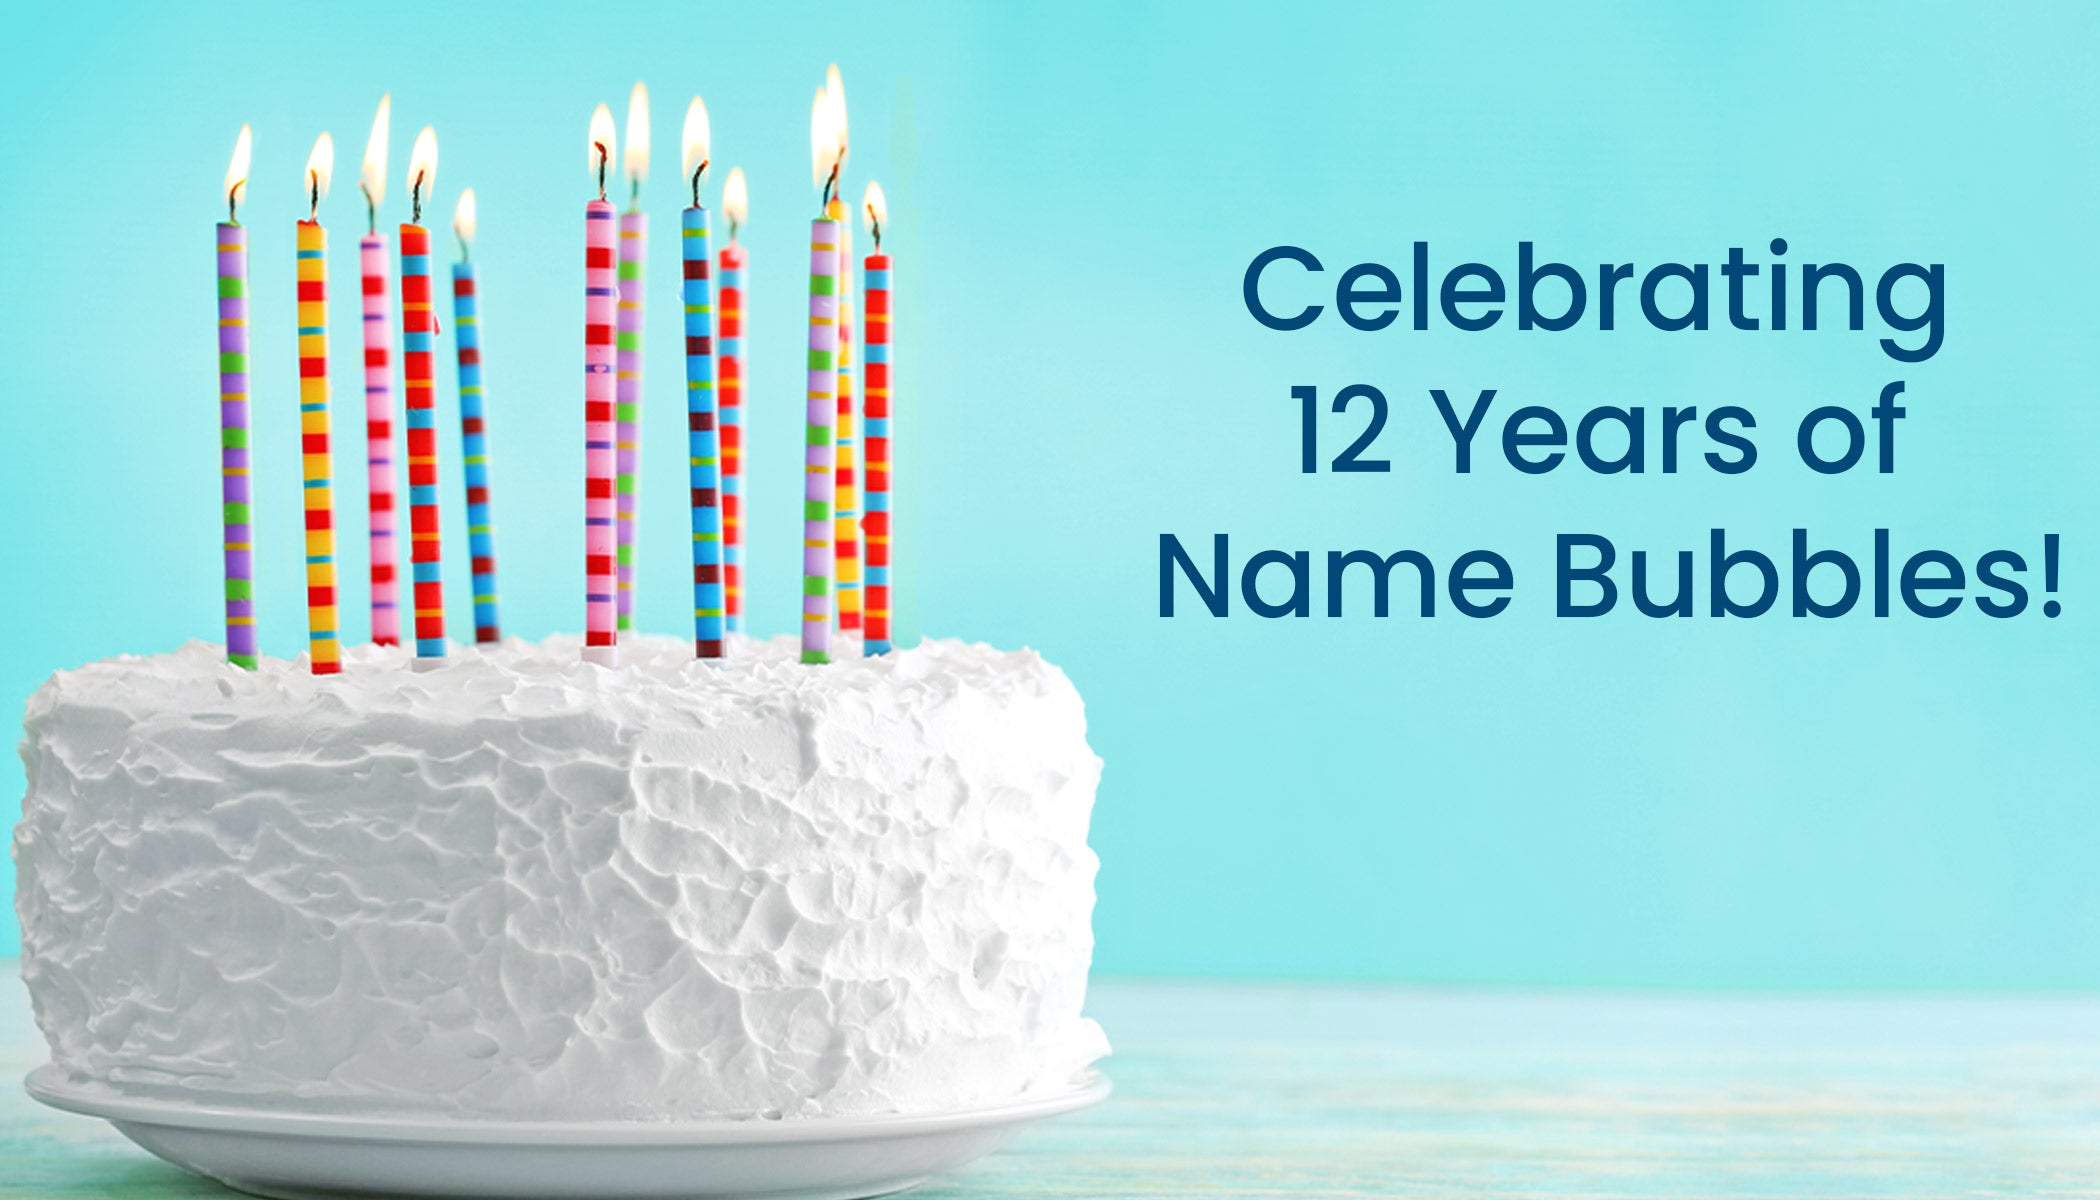 Name Bubbles is celebrating its 12th anniversary